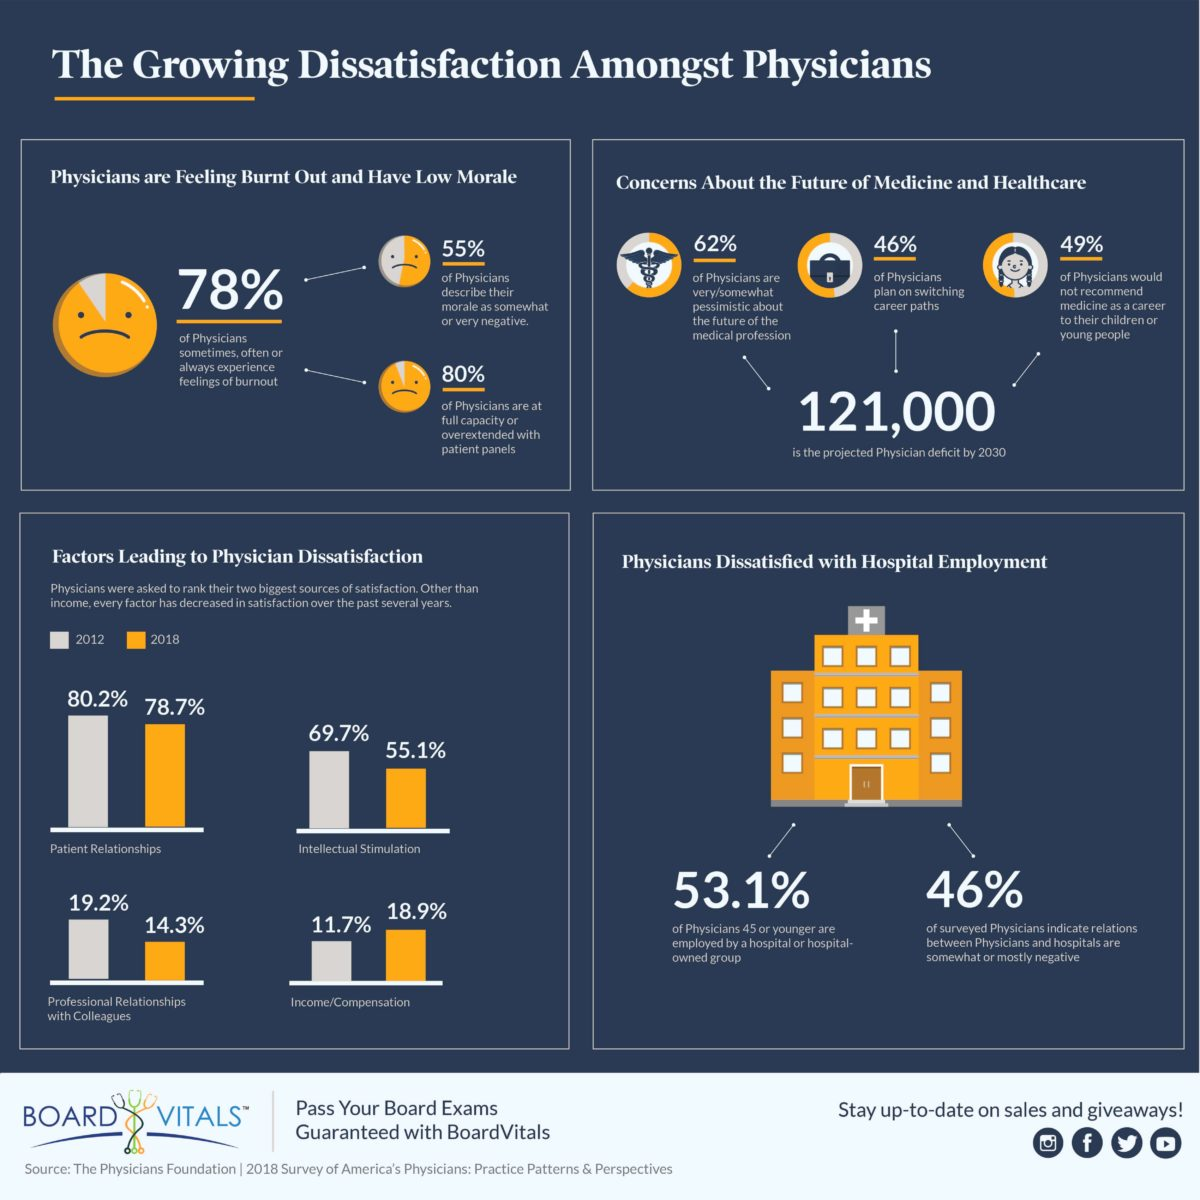 Increasing Physician Dissatisfaction and Threats to the Future of Medicine